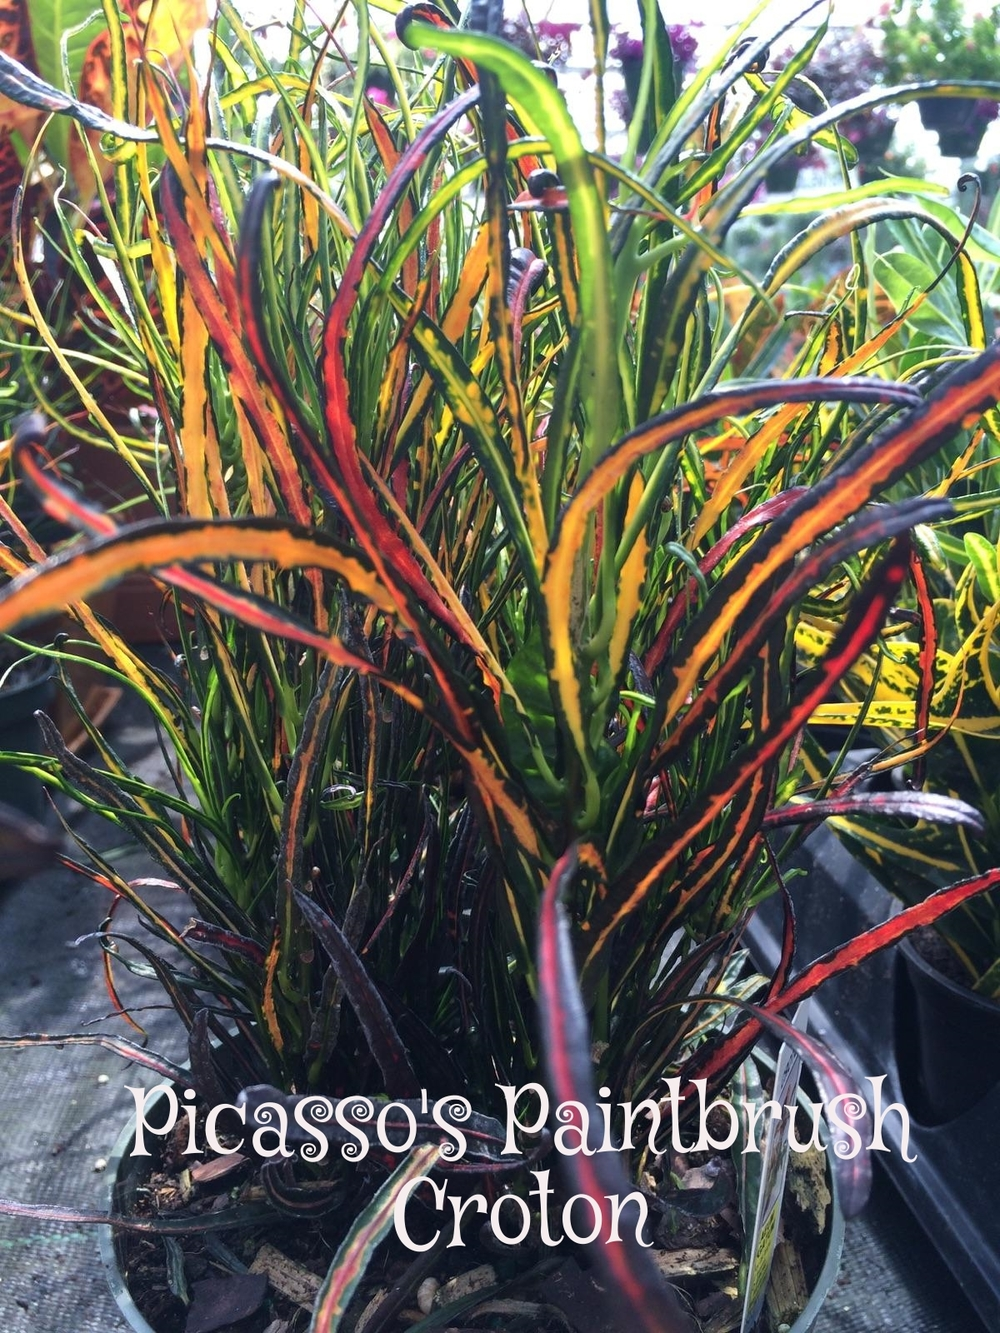 Picasso's Paintbrush Croton